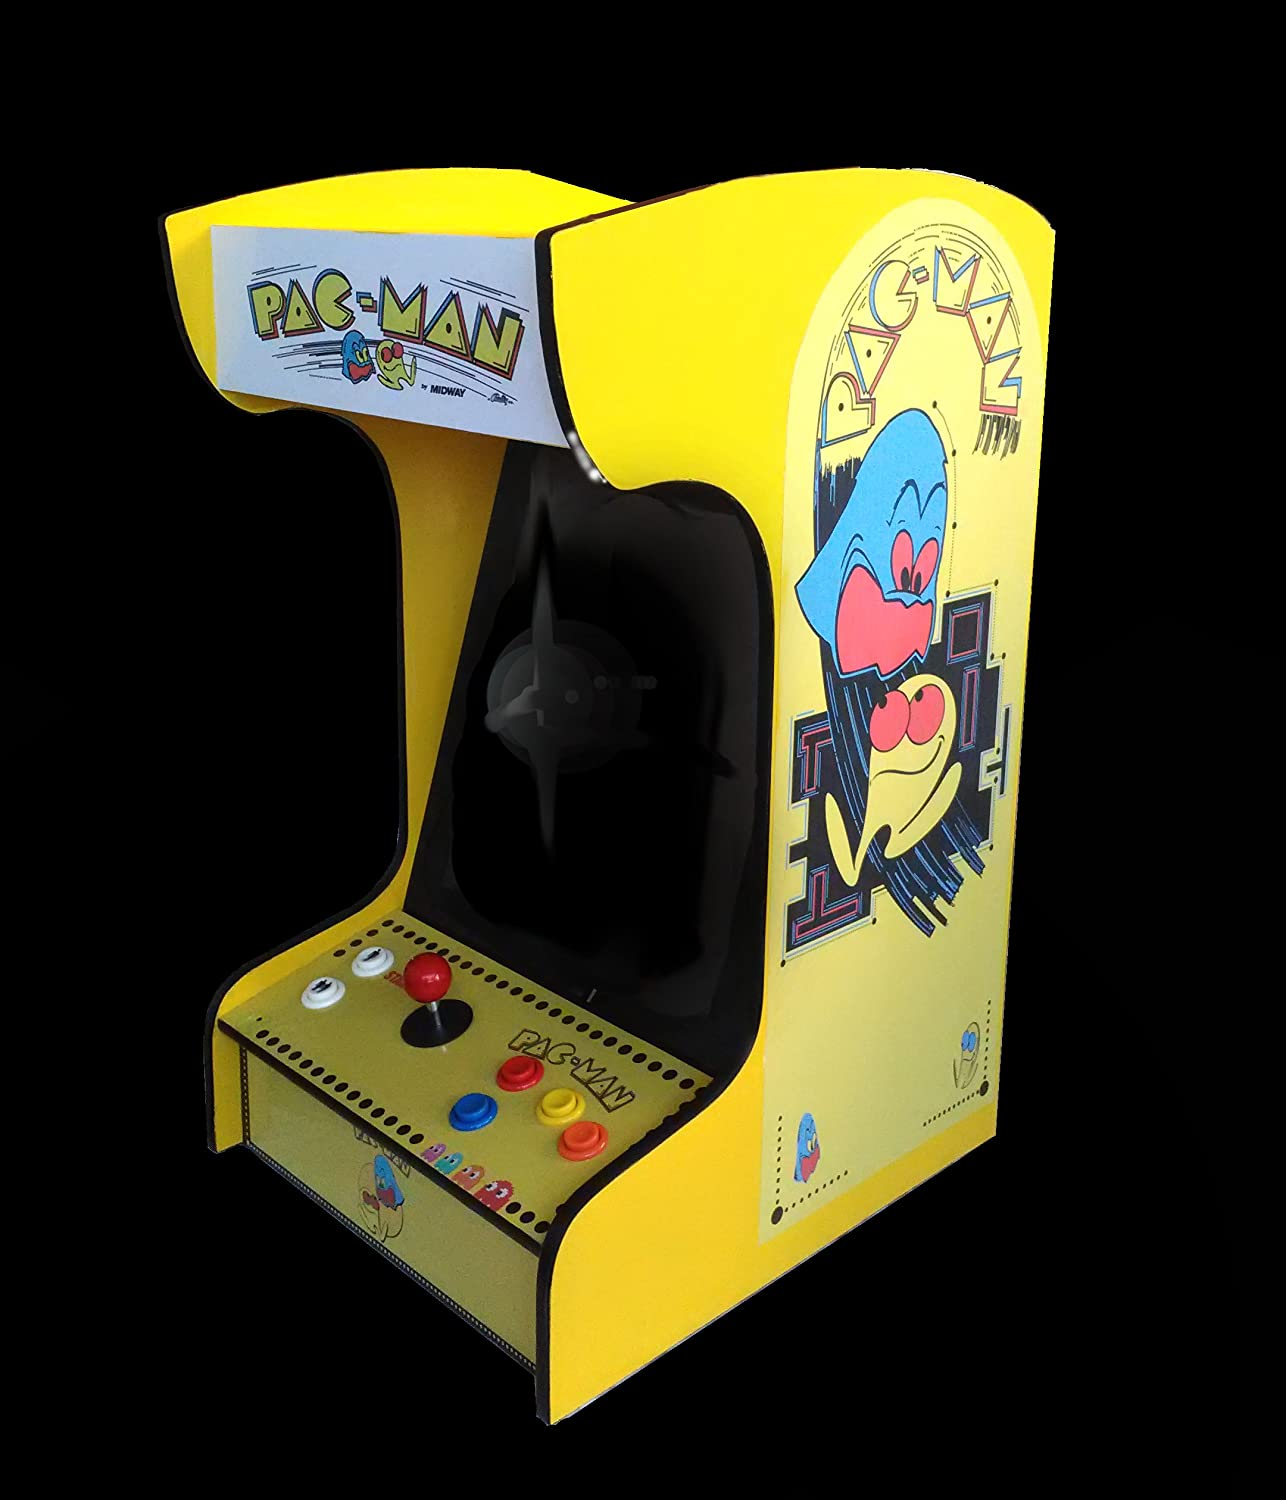 Doc and Pies Arcade Factory Classic Home Arcade Machine - Tabletop and Bartop - 412 Retro Games - Full Size LCD Screen, Buttons and Joystick - 2 Year Warranty (Yellow)